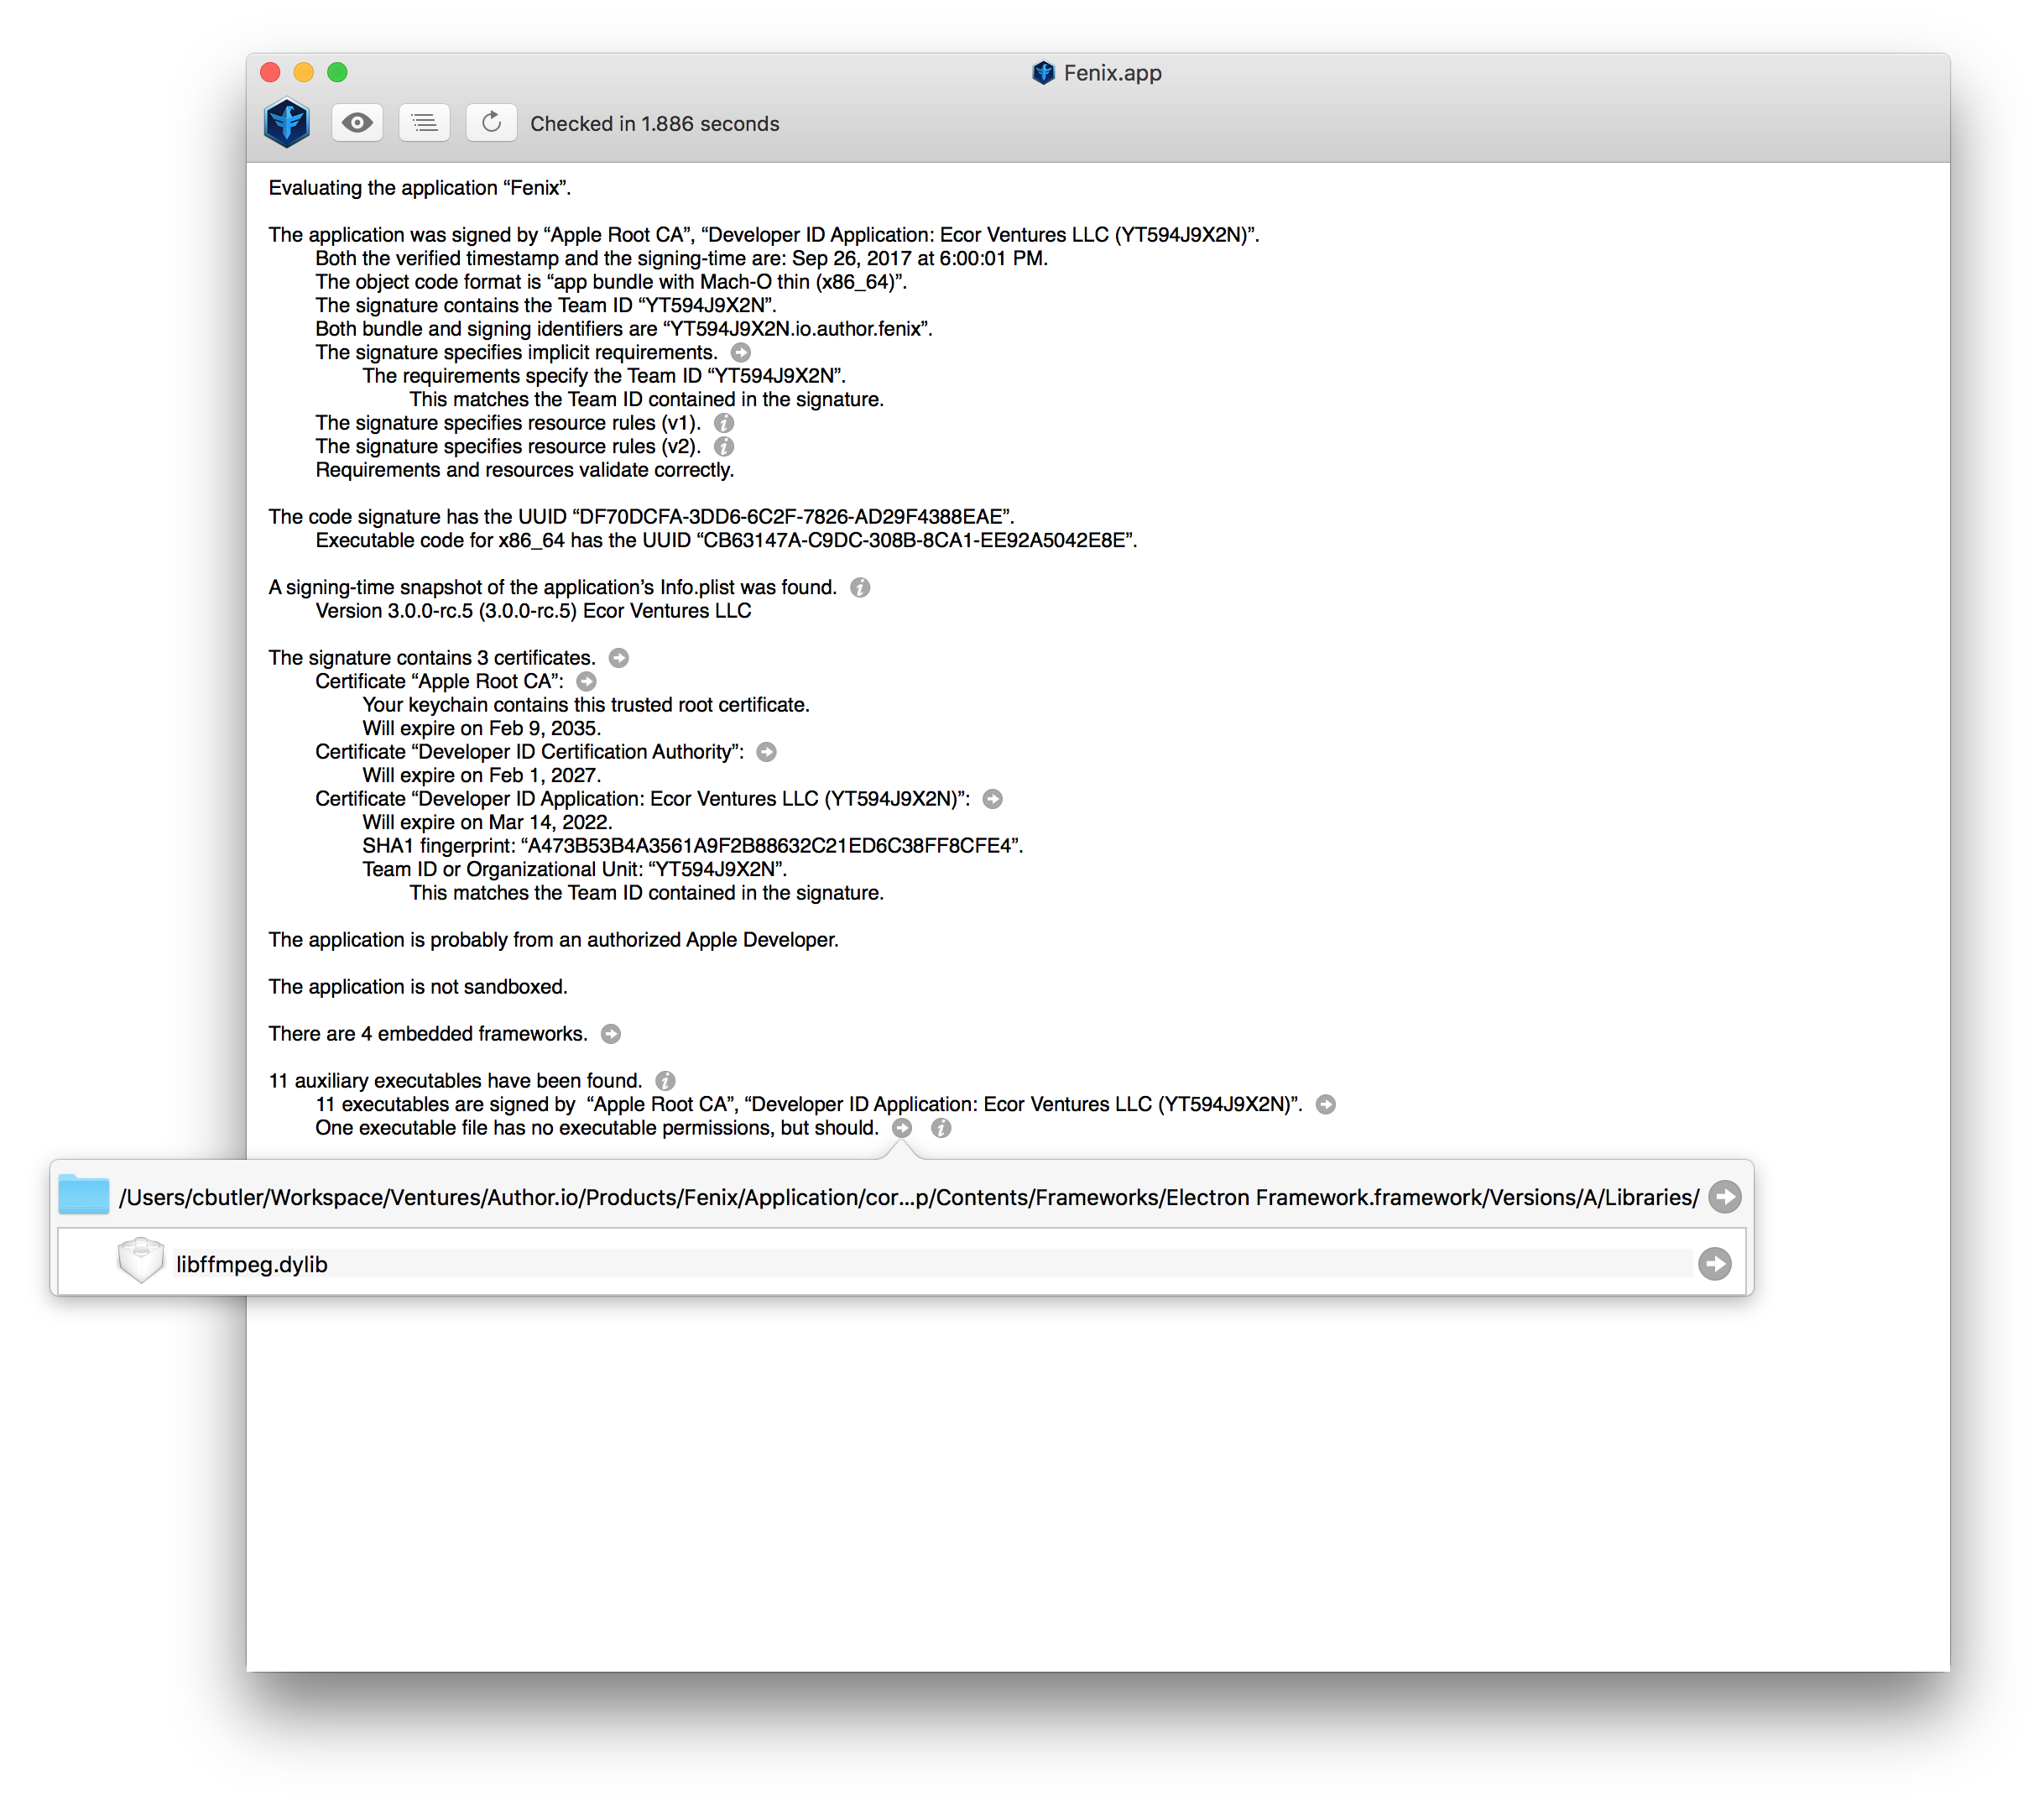 Invalid permissions for libffmpeg dylib (macOS) · Issue